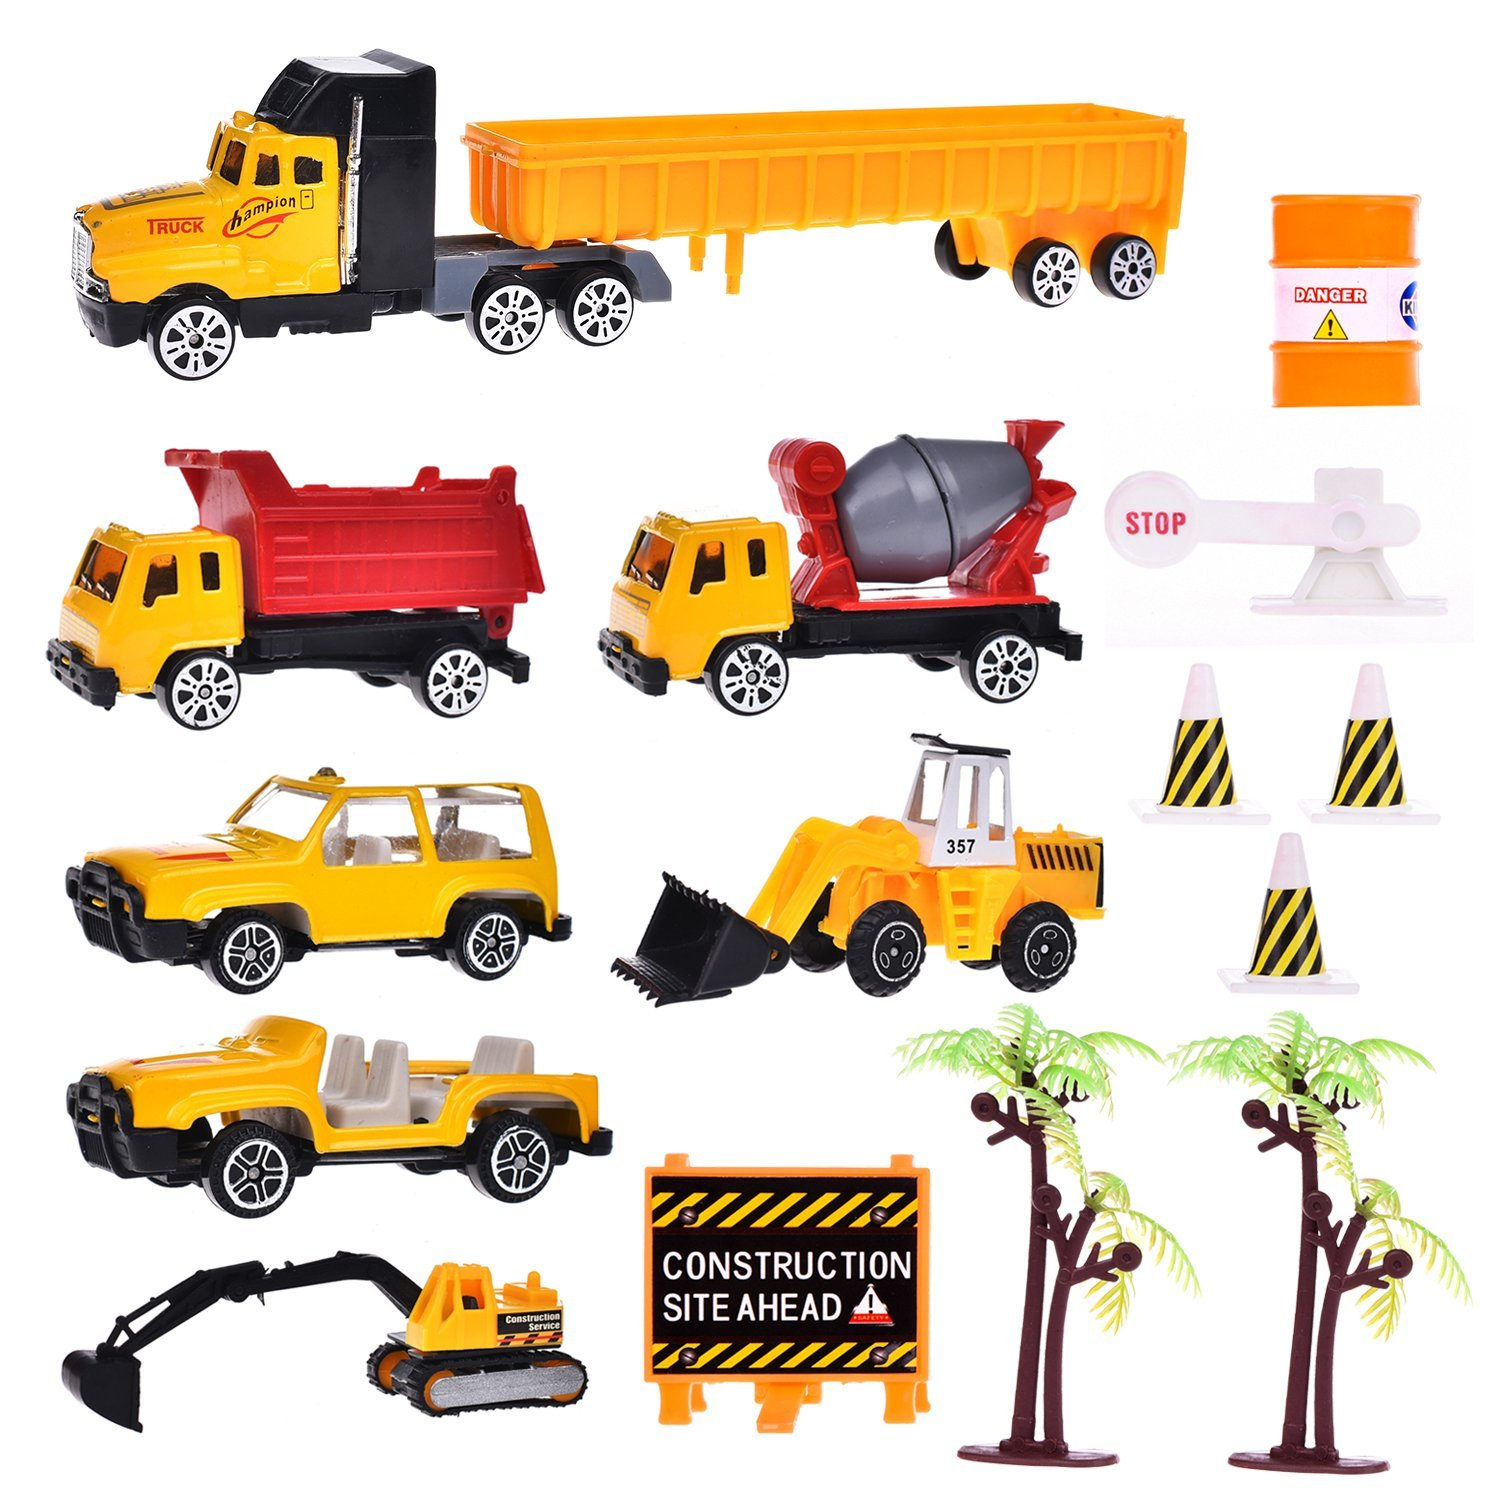 Construction Cars Play Set Vehicles Trucks Playsets for Boys Tough Construction Toy Set... by LIVEDITOR LIGHTING